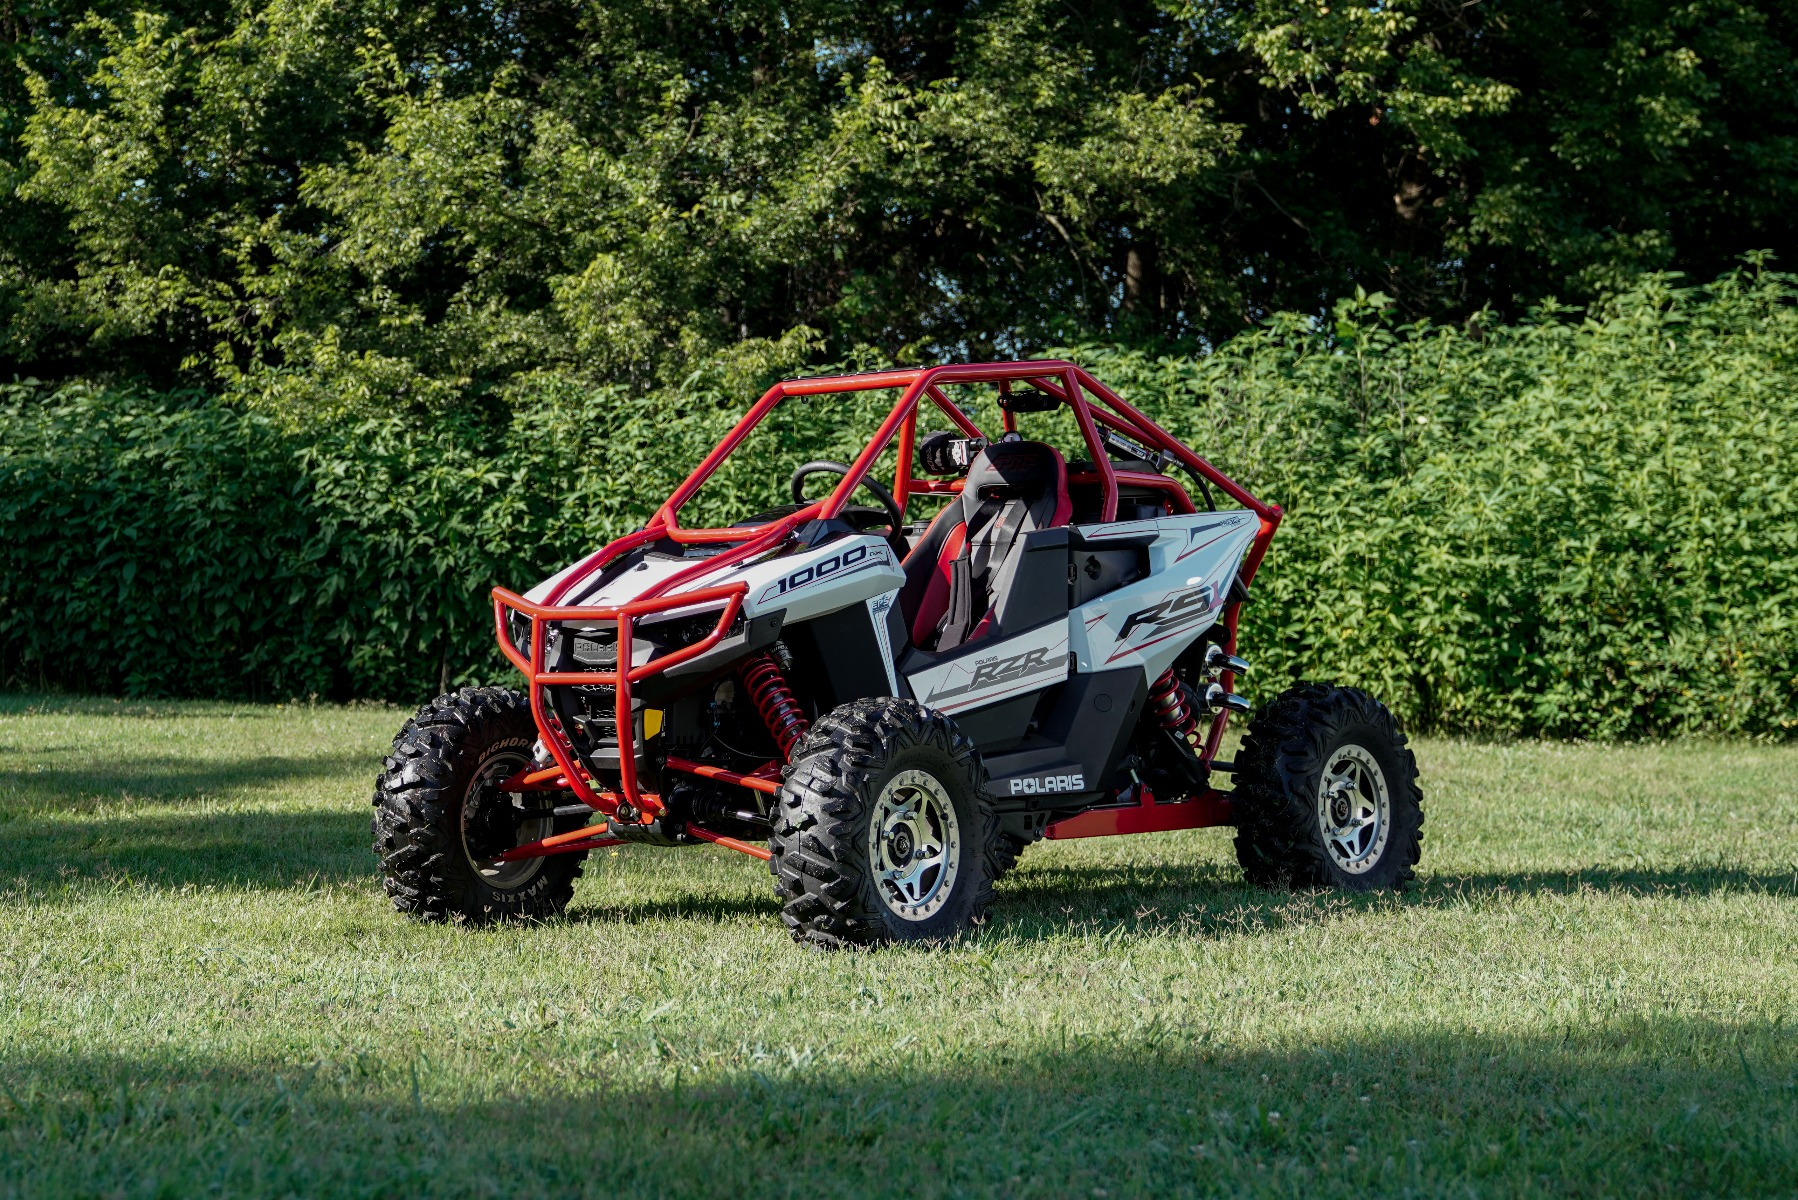 Polaris RZR RS1 Roll Cage in grass Image 7